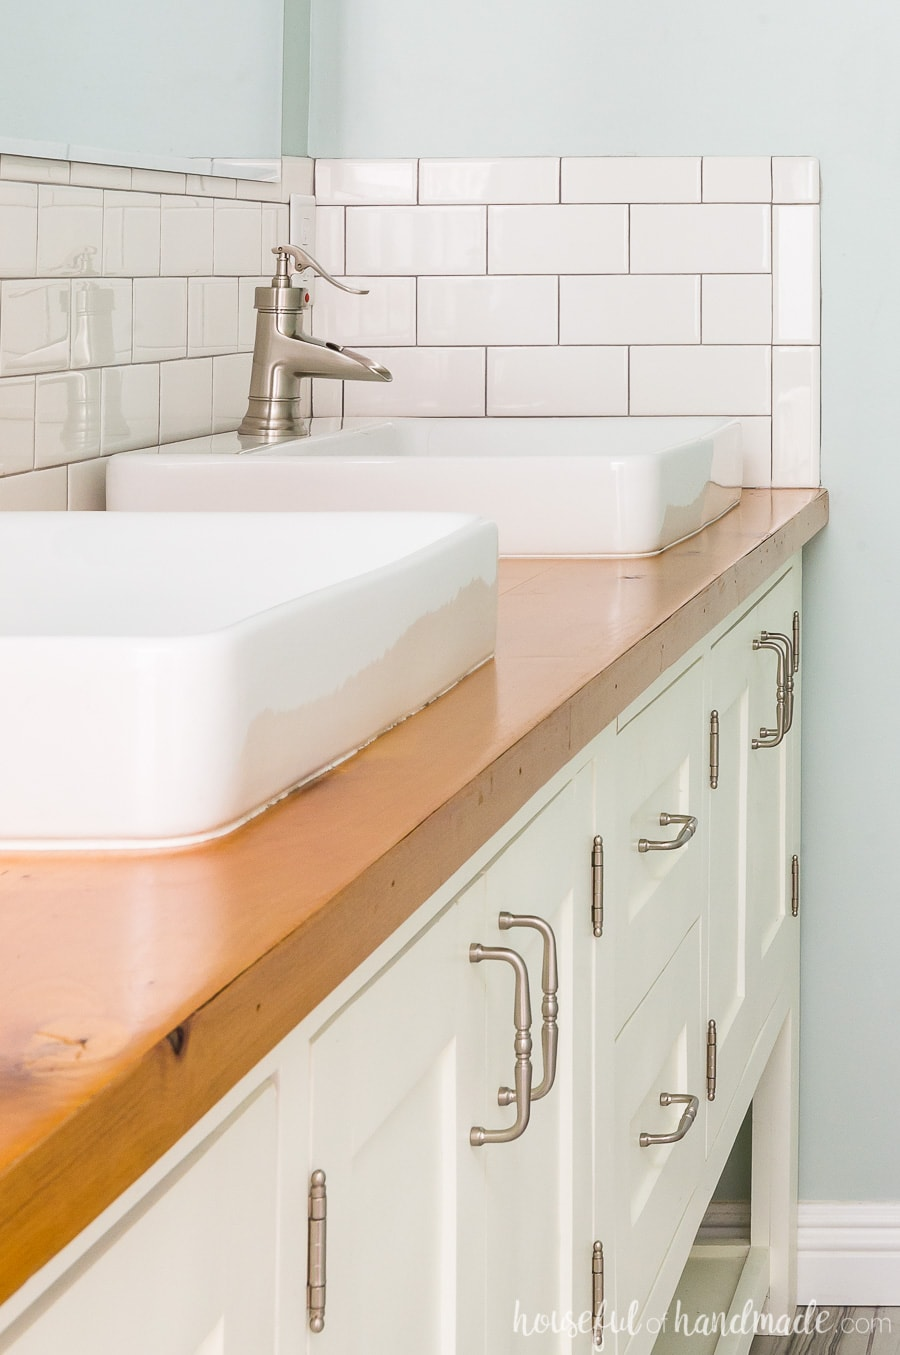 Two large vessel sinks on top of a natural wood vanity top make this a master bathroom retreat. The white subway tile backsplash and white vanity is the perfect balance.